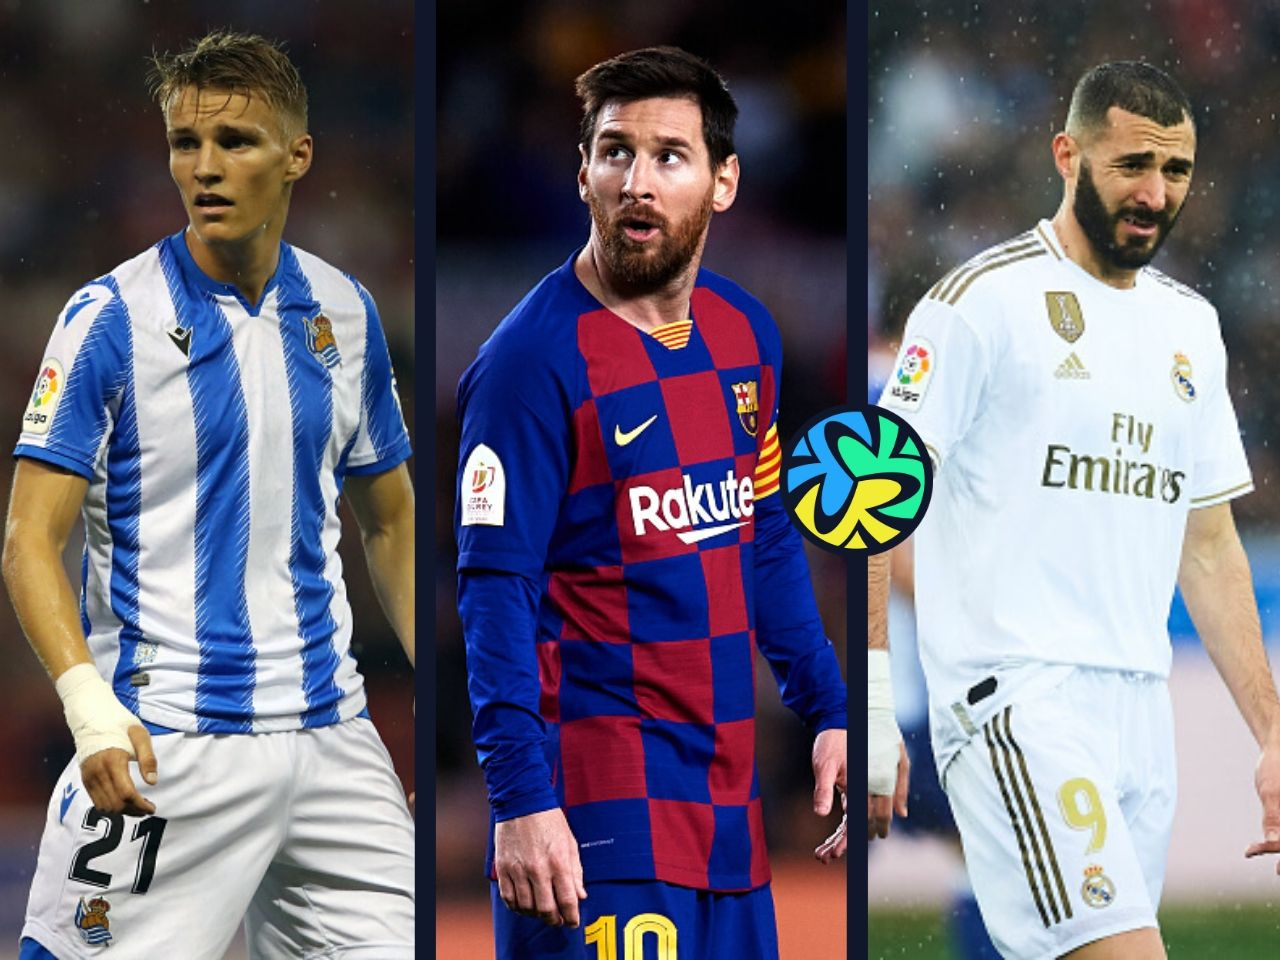 Top 10 La Liga players this season statistically